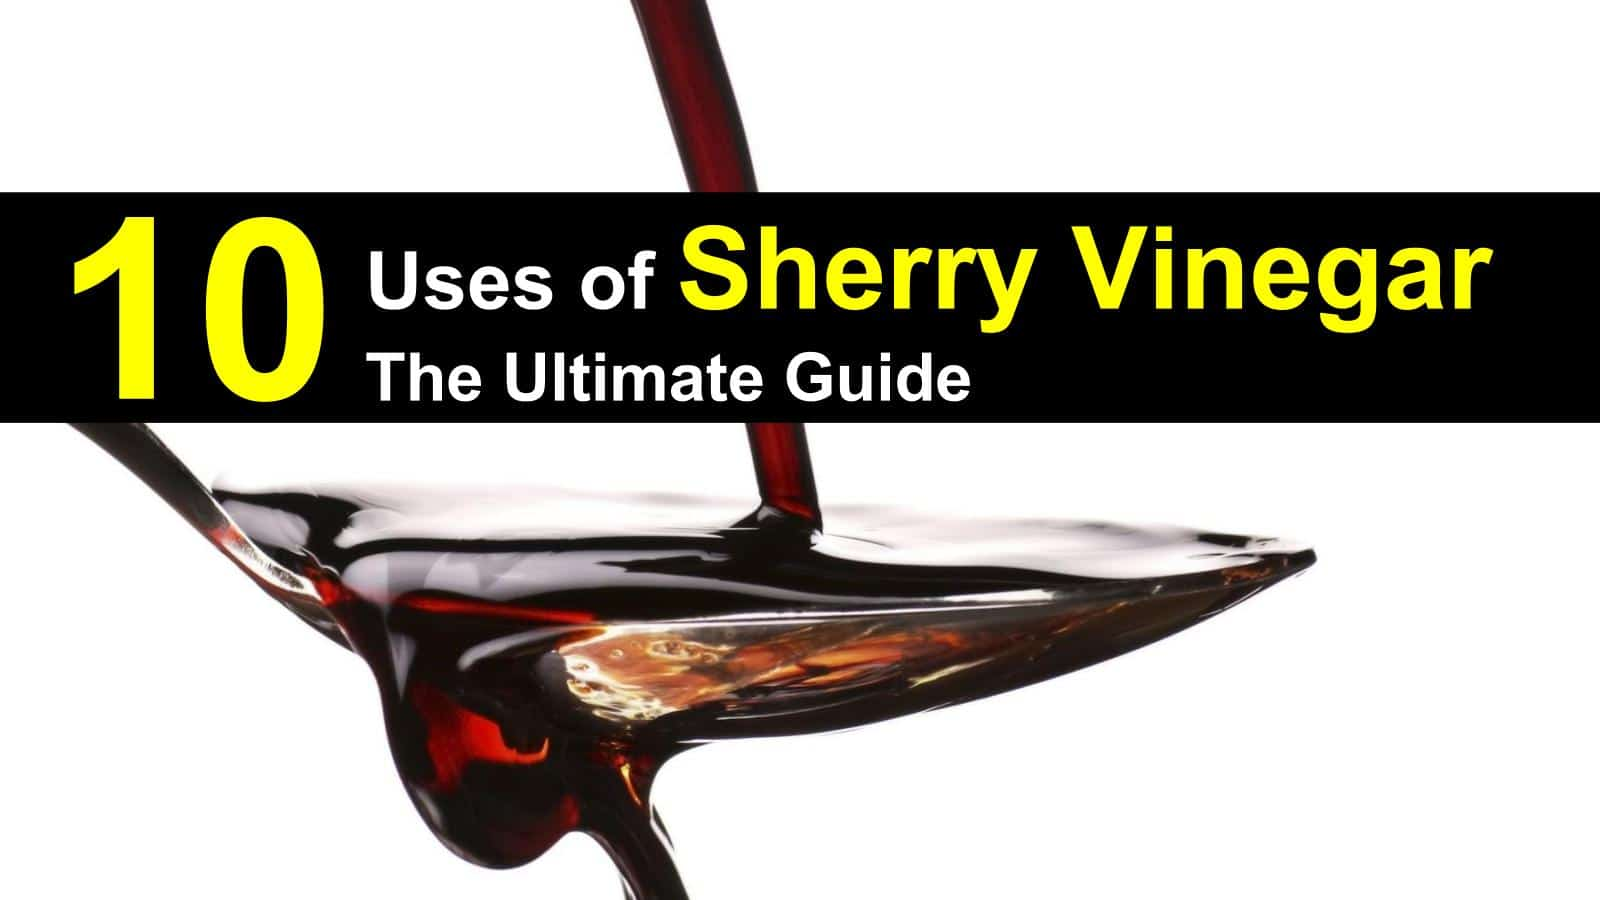 sherry vinegar img